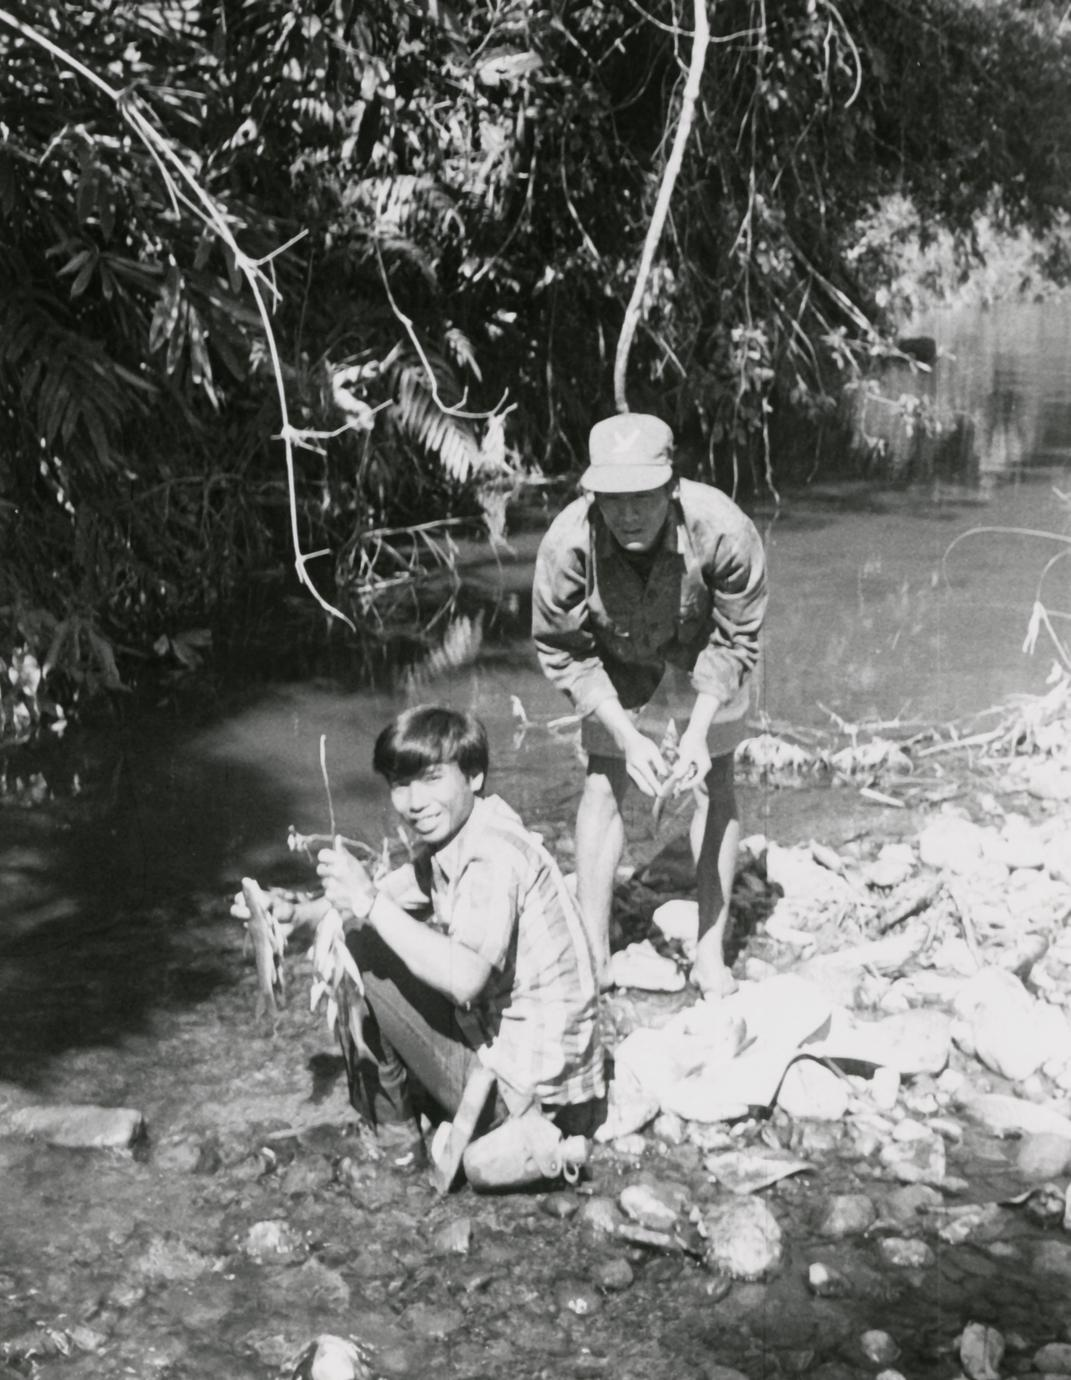 Display of fish caught in a river in Houa Khong Province